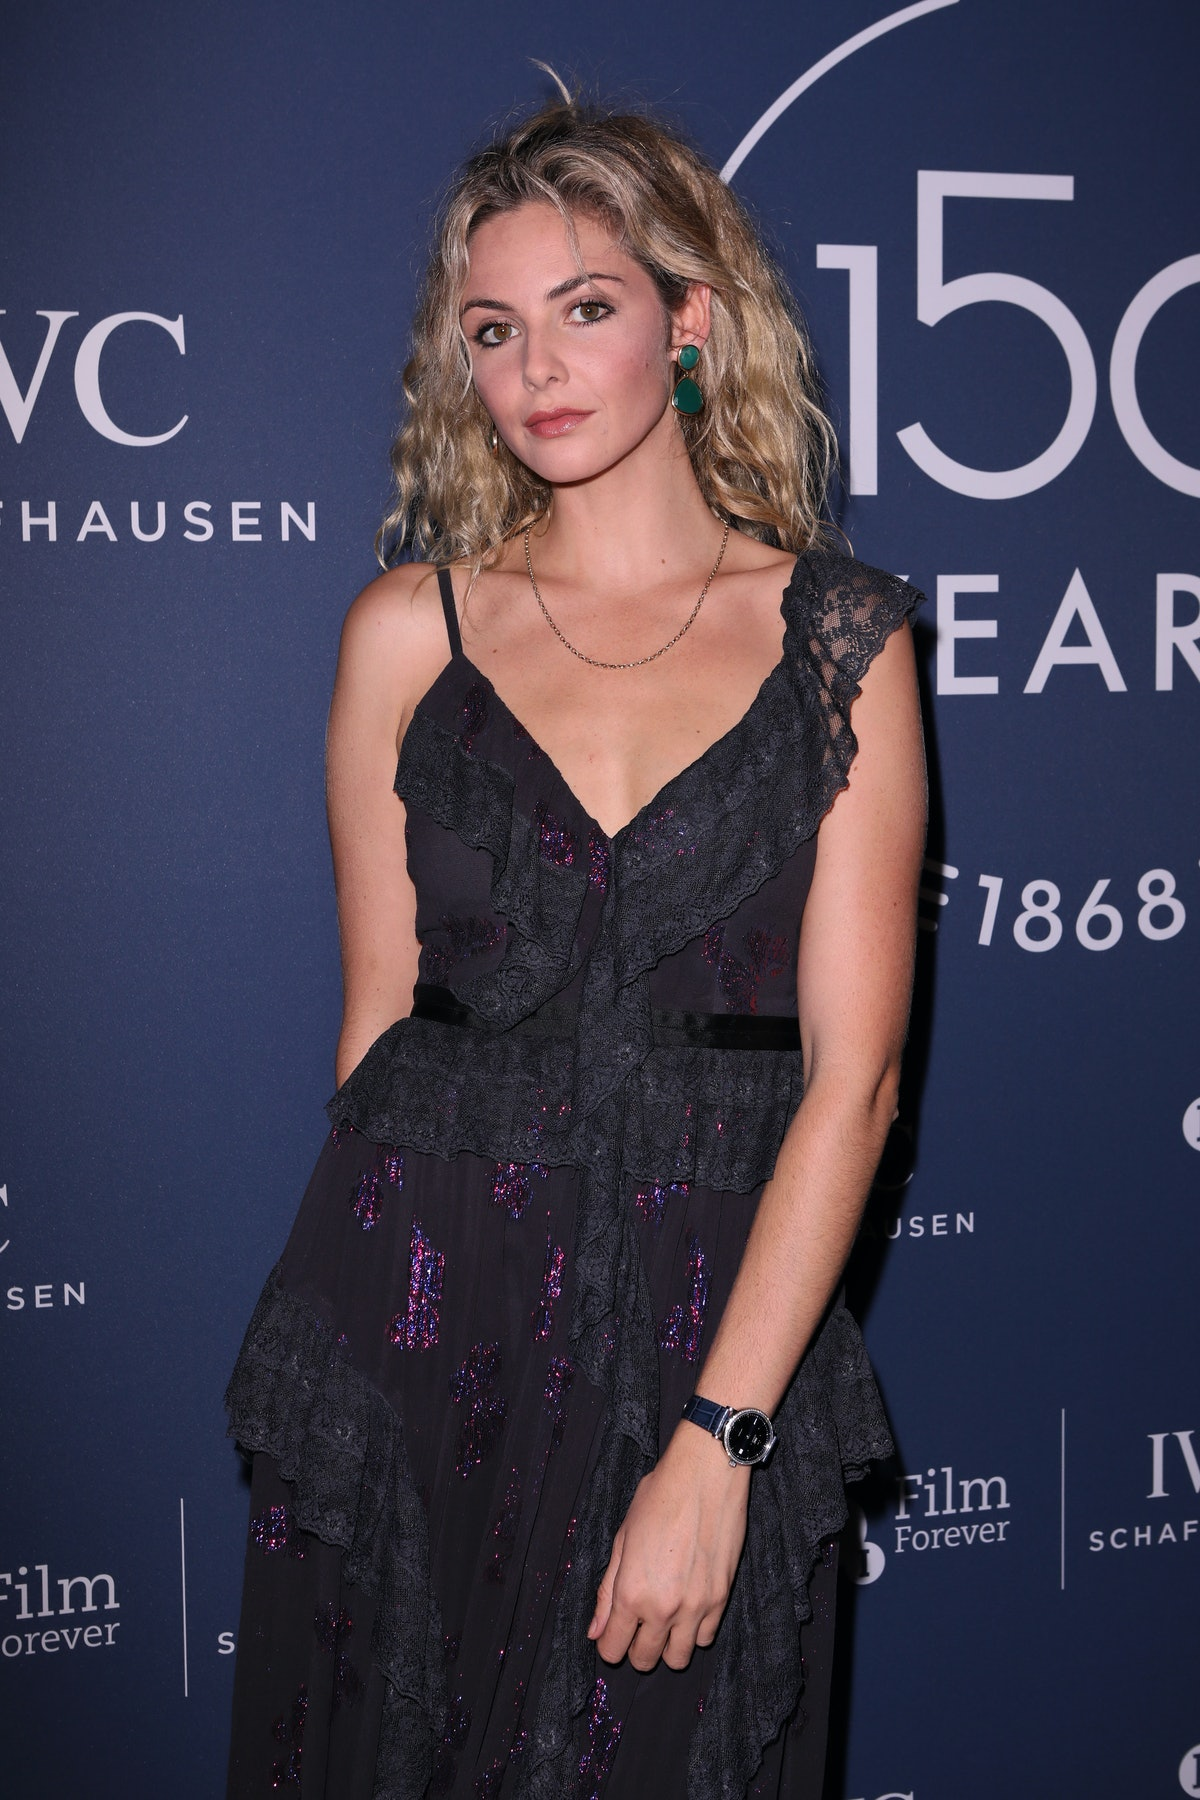 """LONDON, ENGLAND - OCTOBER 09:   Tamsin Egerton attends the IWC Schaffhausen Filmmaker Bursary Award ceremony in association with the BFI at the Electric Light Station on October 9, 2018 in London, England. During the event, director Edgar Wright presented the third annual """"IWC Schaffhausen Filmmaker Bursary Award in Association with the BFI"""" worth £50,000.  (Photo by David M. Benett/Dave Benett/Getty Images for IWC Schaffhausen)"""